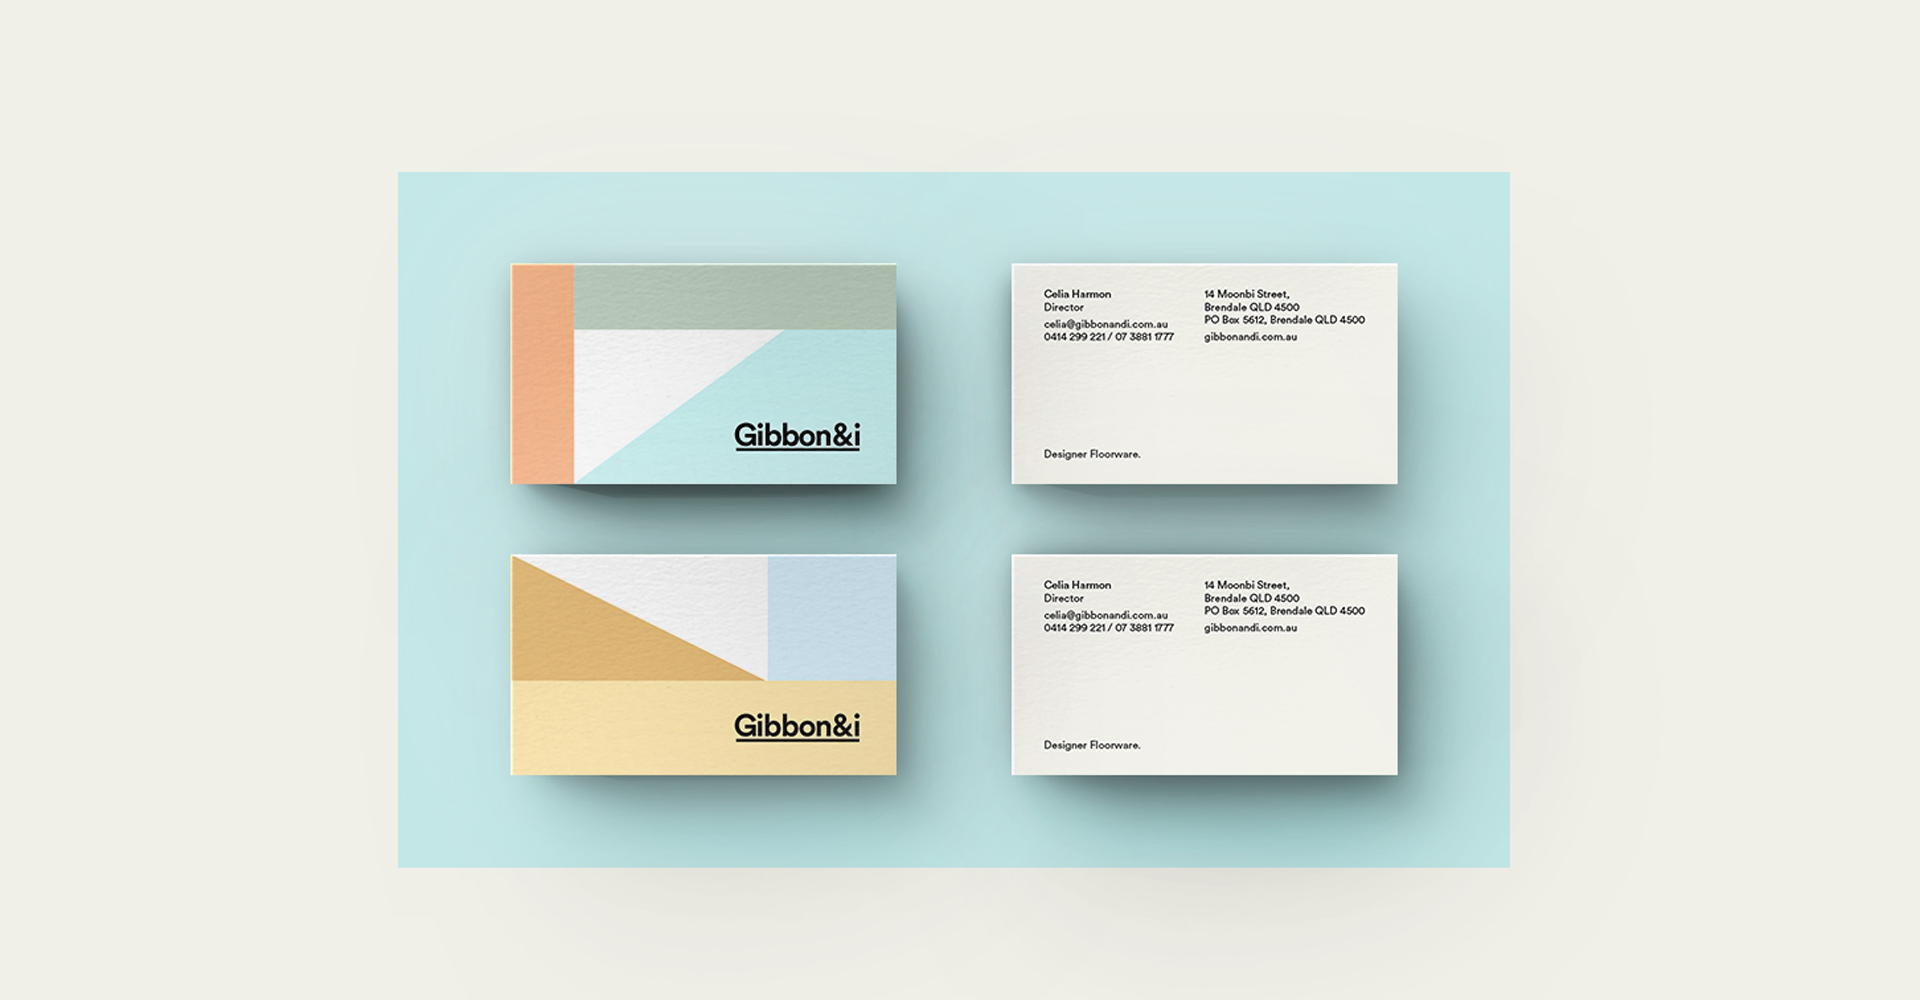 Gibbon-and-i-business-card-united-yeah.jpg